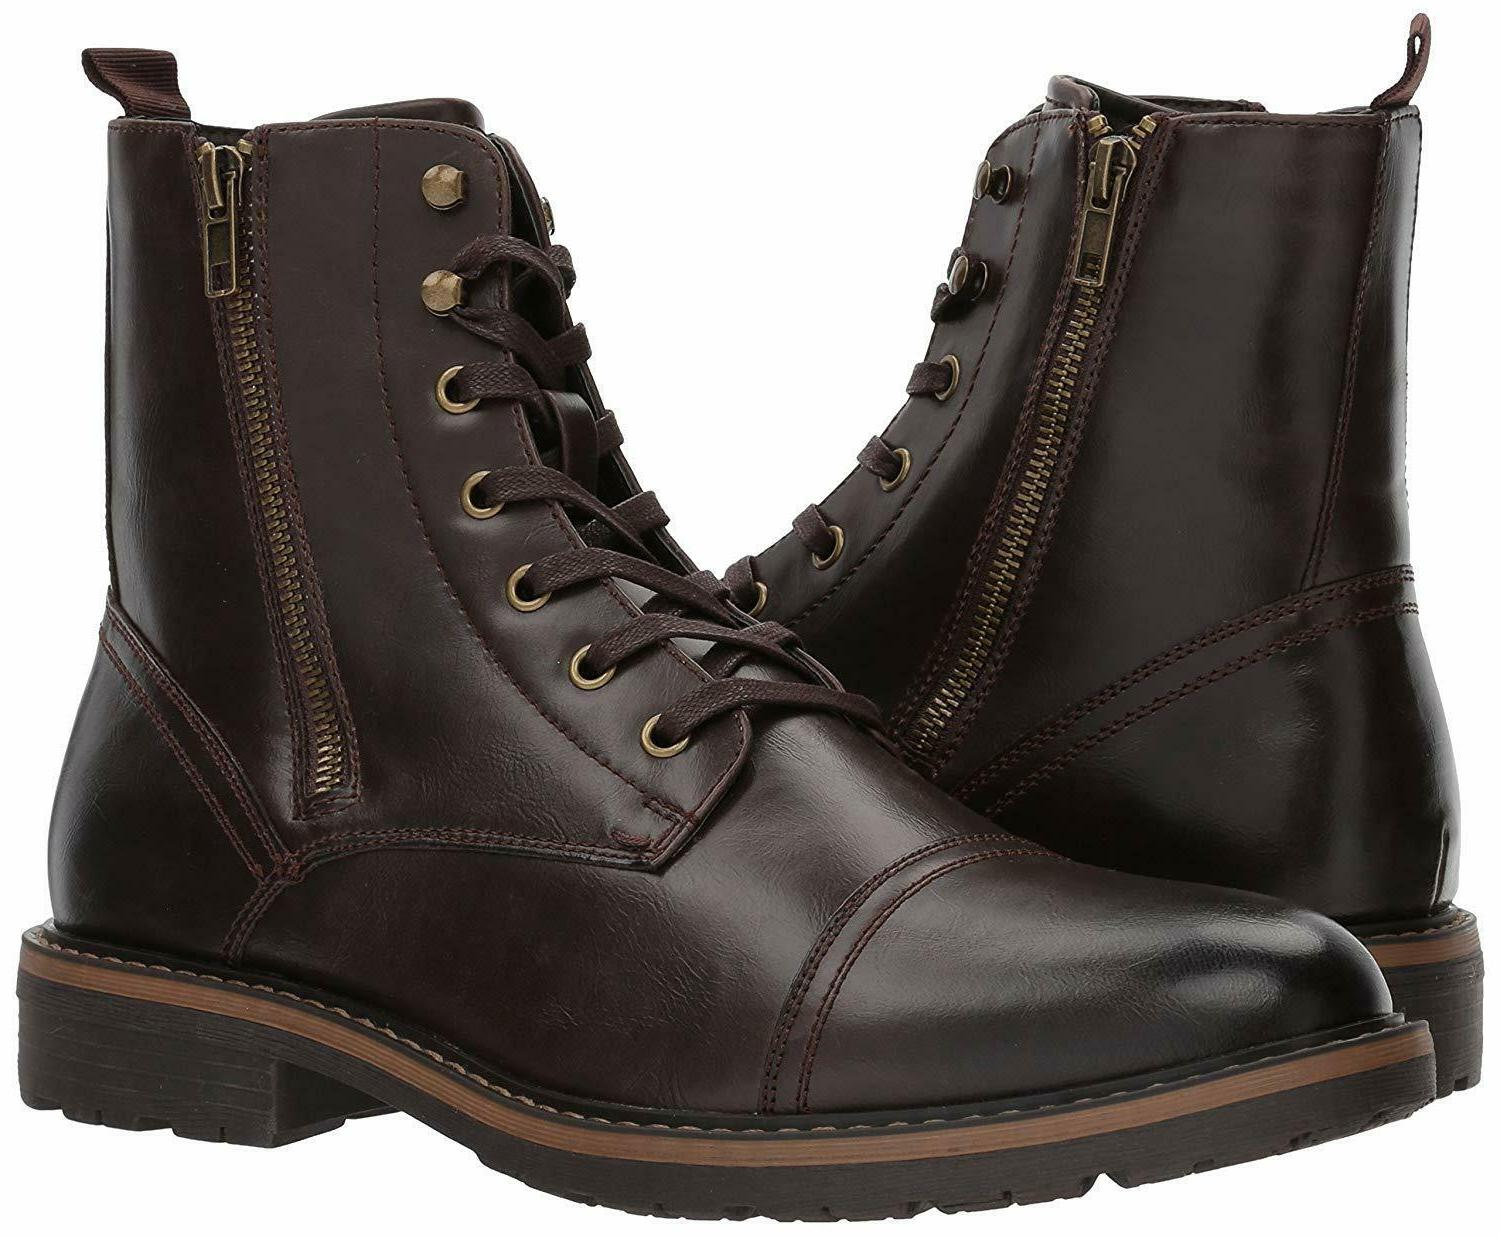 Unlisted Men's Brown,